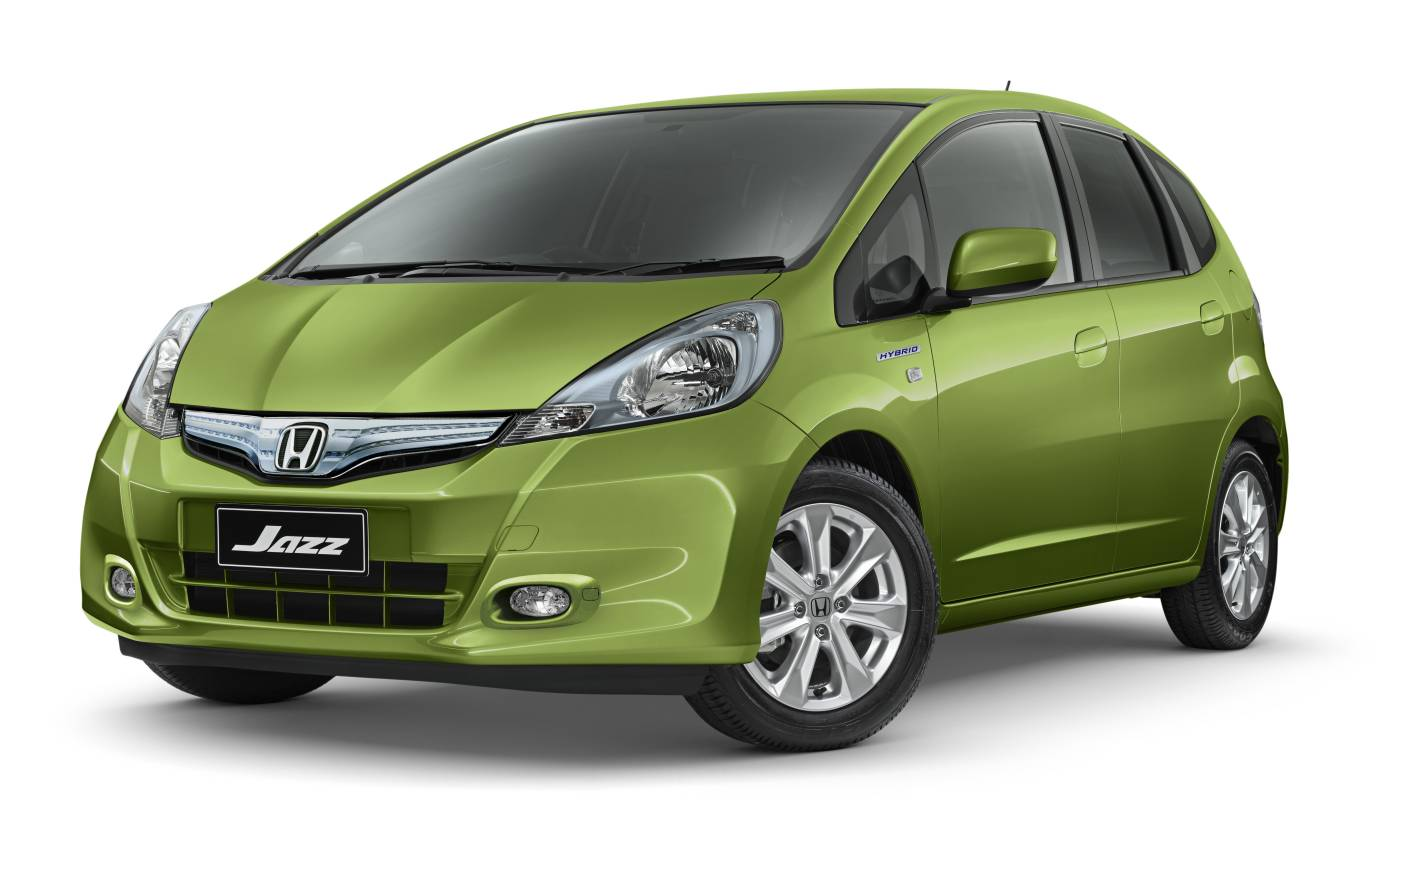 News 2013 Honda Jazz Hybrid Is Australia S Most